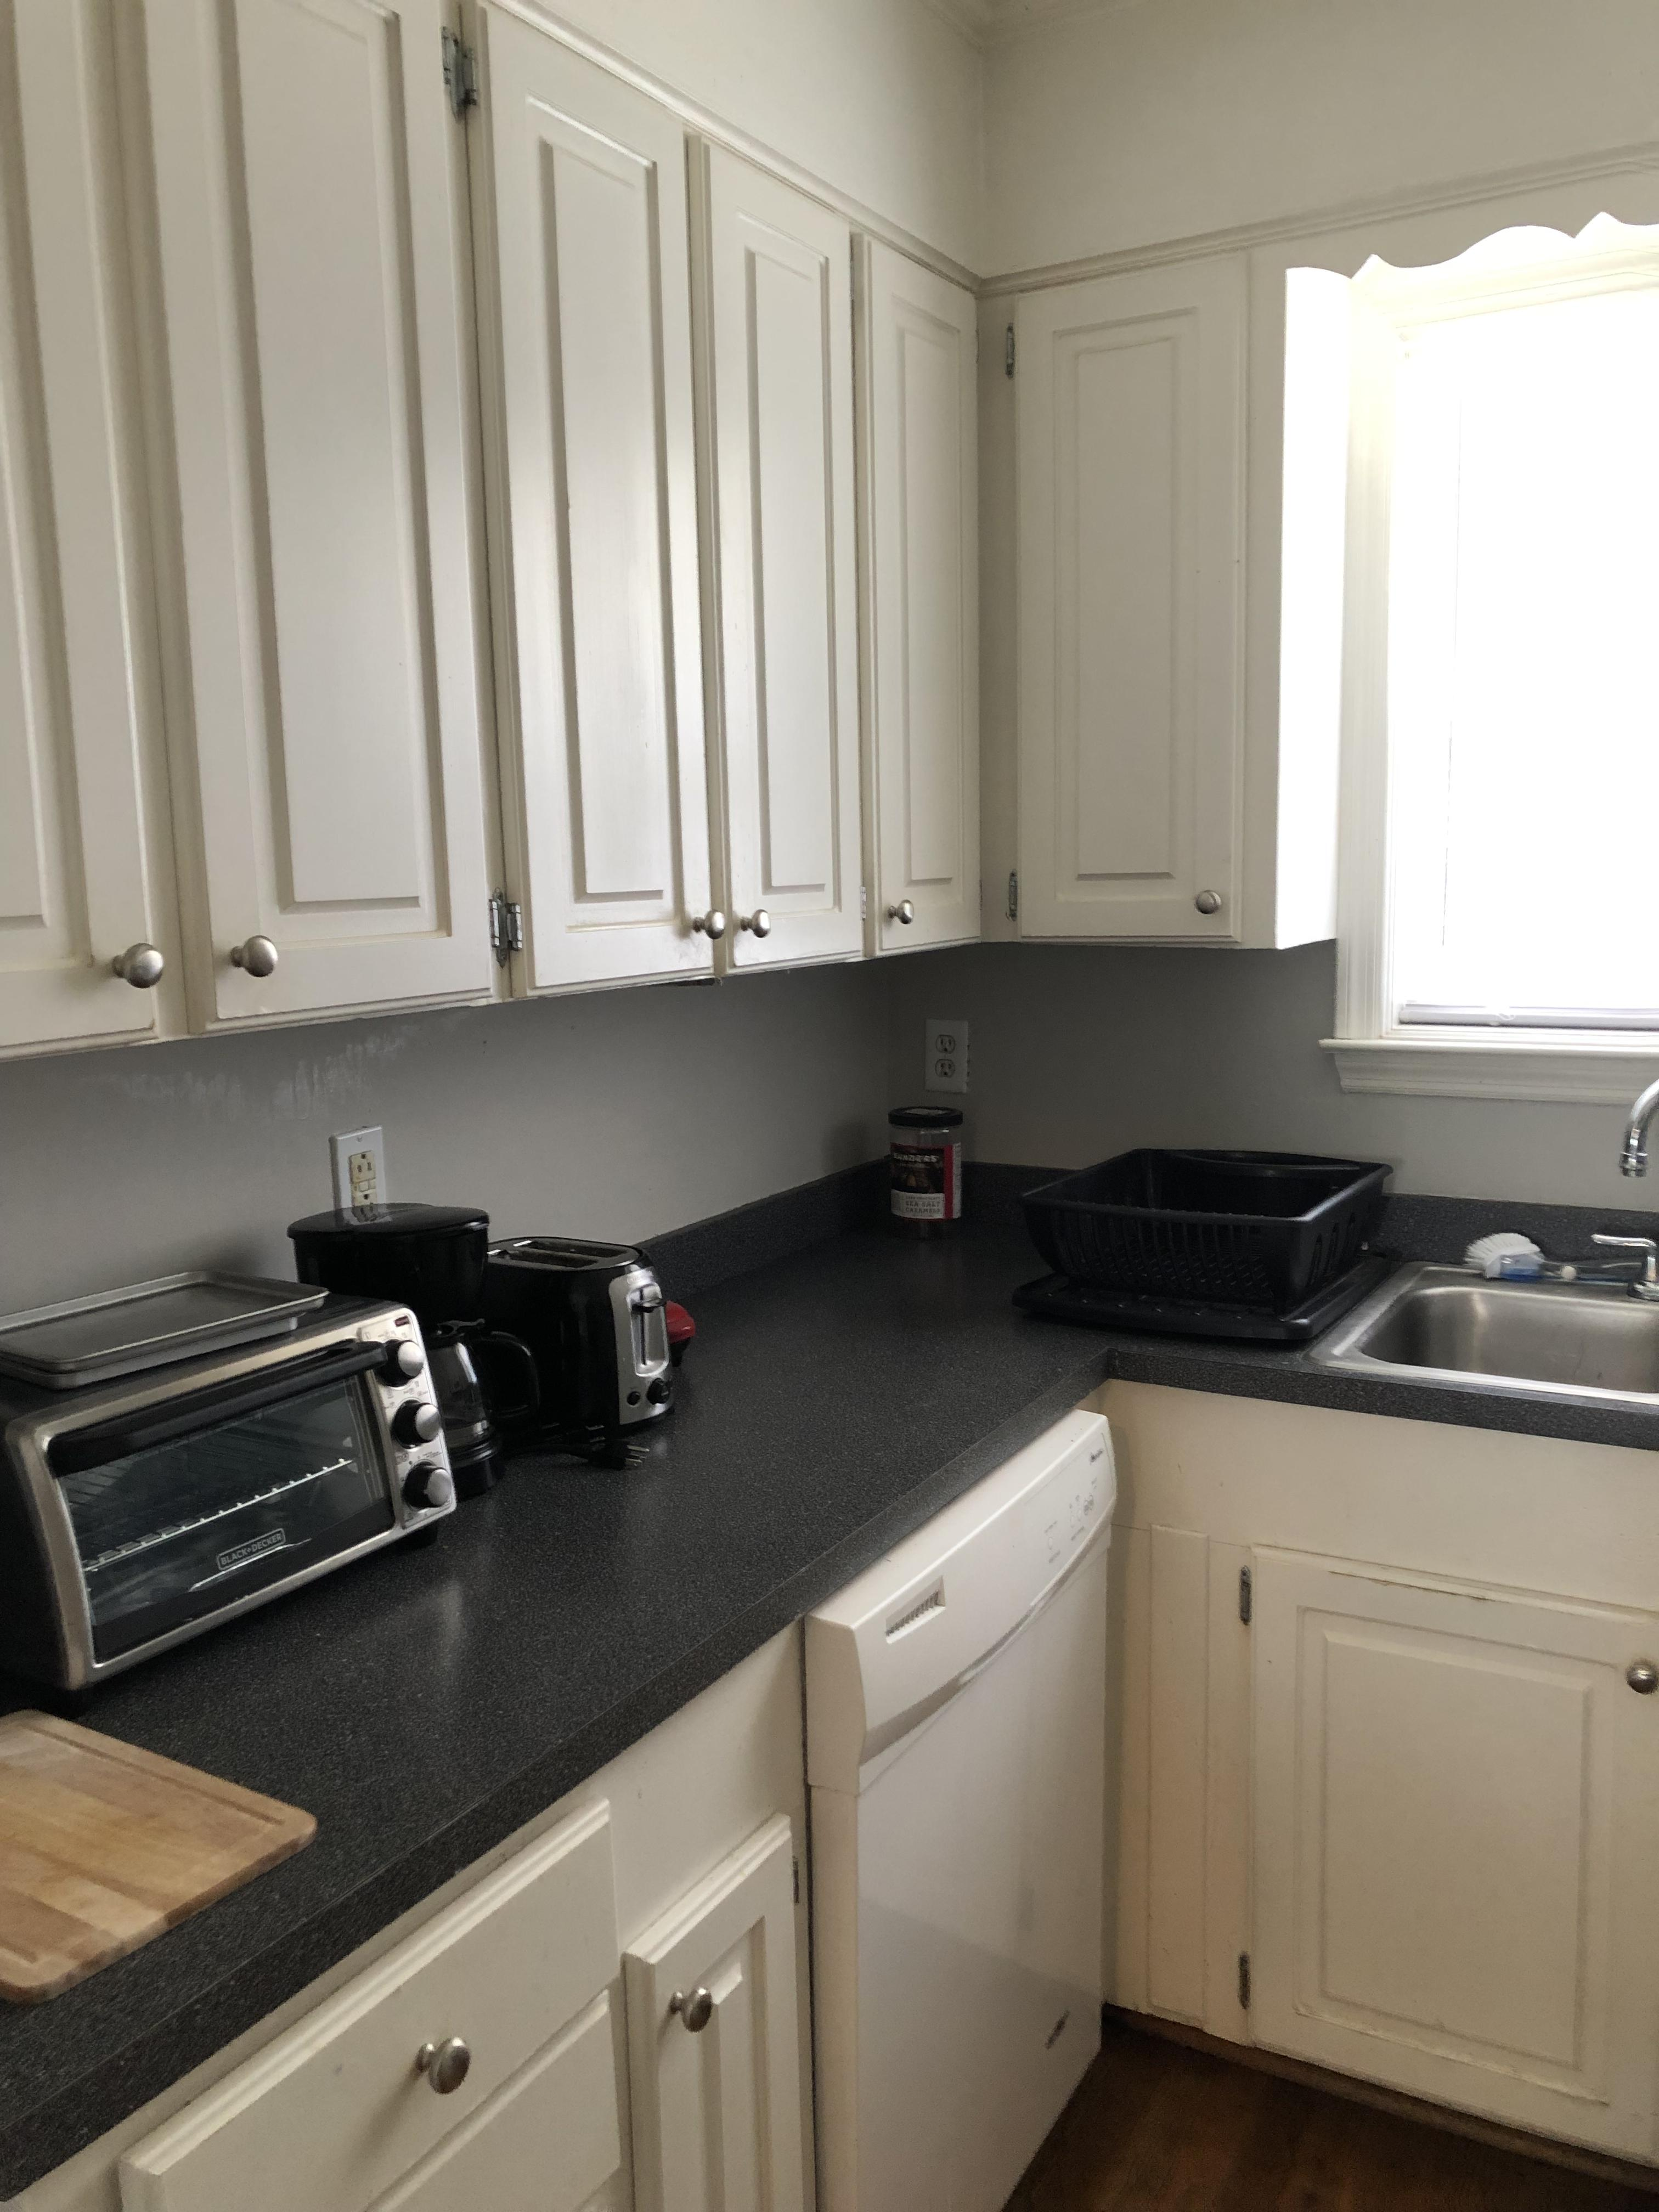 227 South Marion Street,Columbia,South Carolina 29205,2 Bedrooms Bedrooms,1.5 BathroomsBathrooms,Apartment,South Marion Street,1286